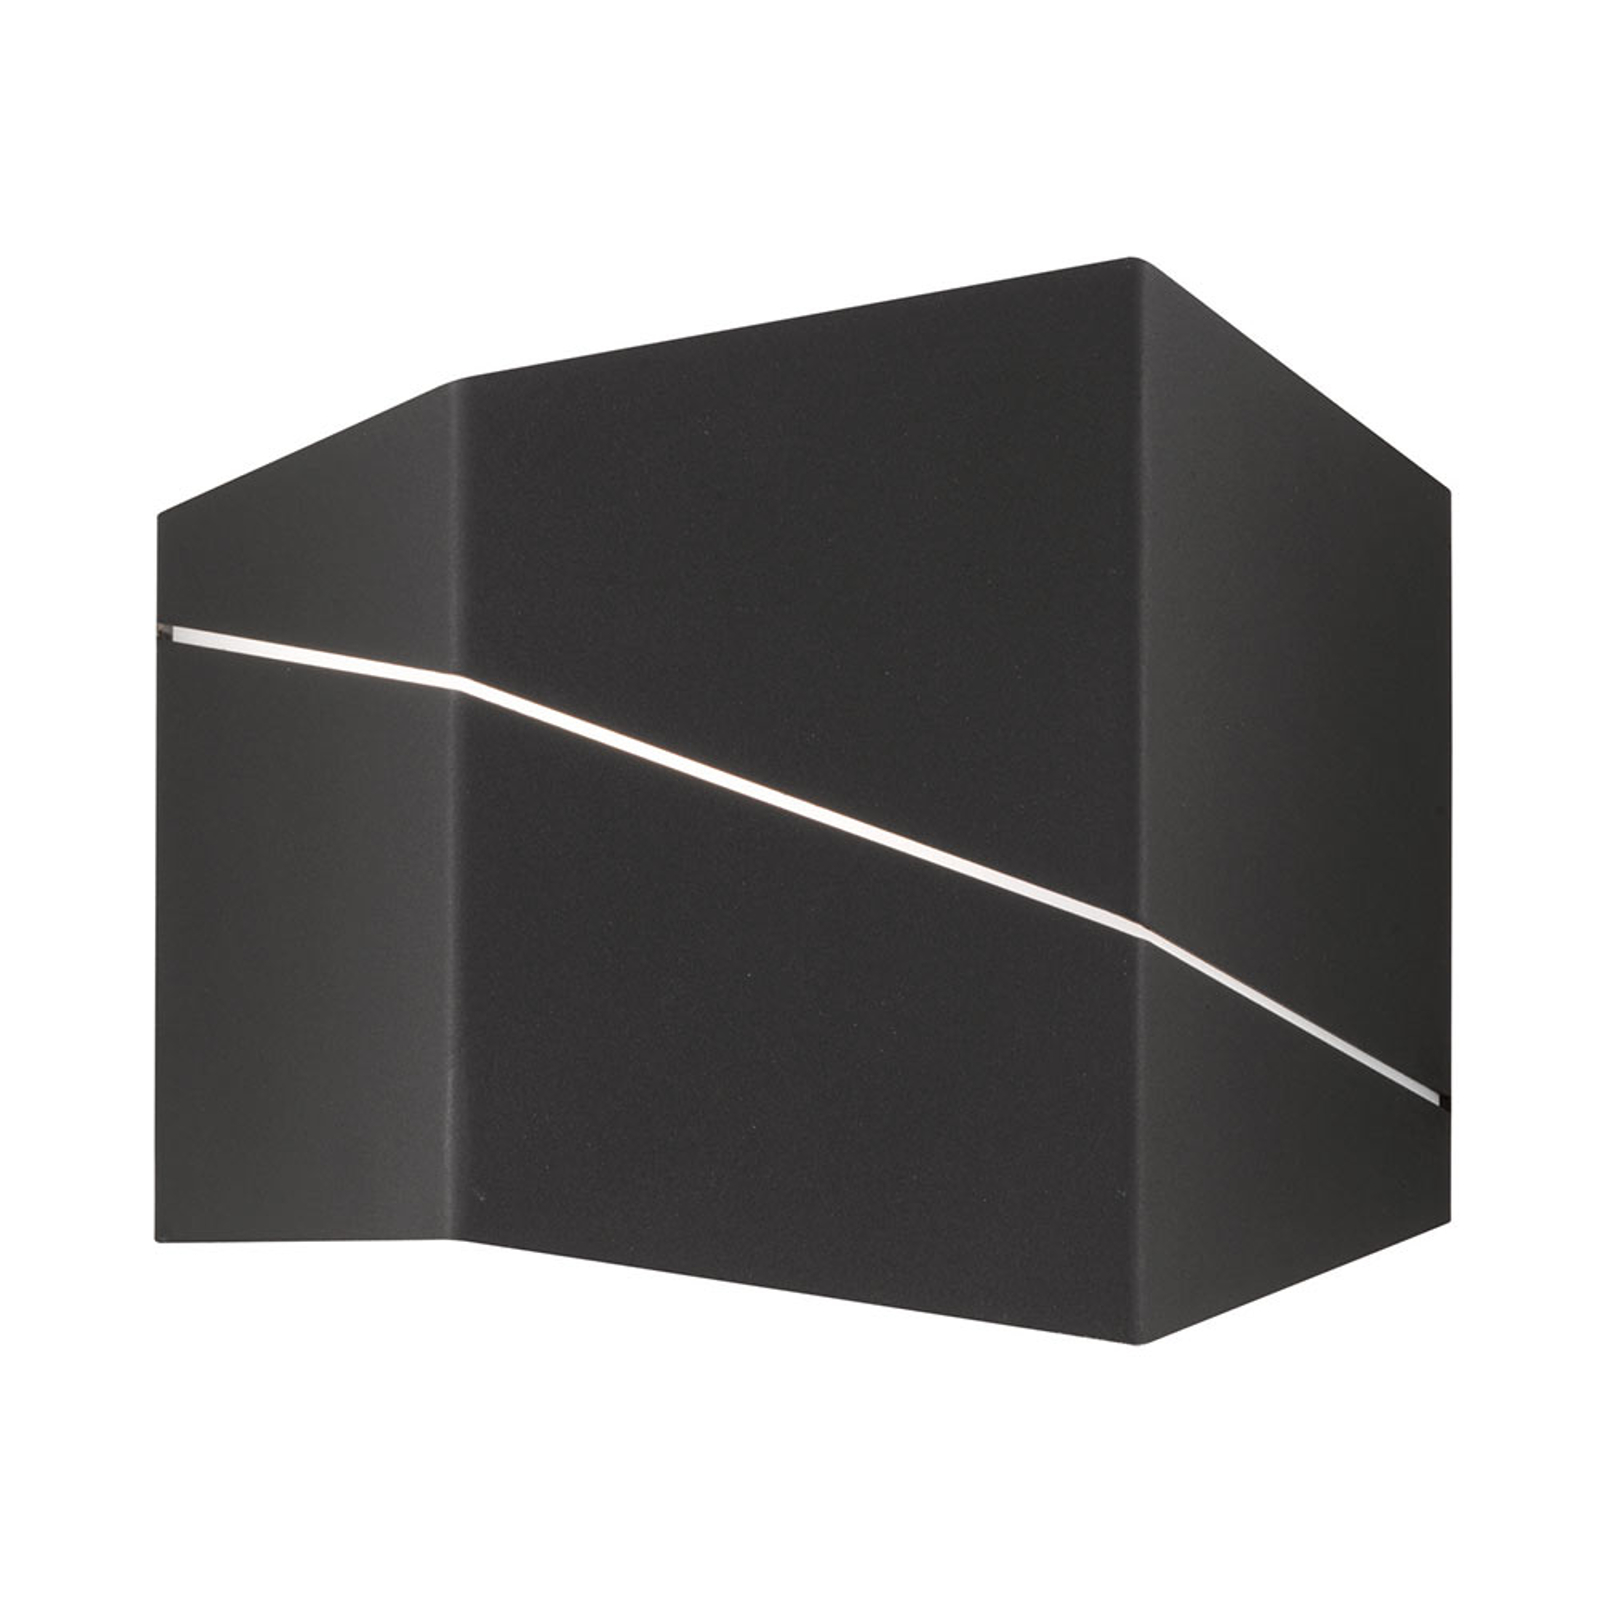 Acquista Zorro - moderna applique LED in nero opaco